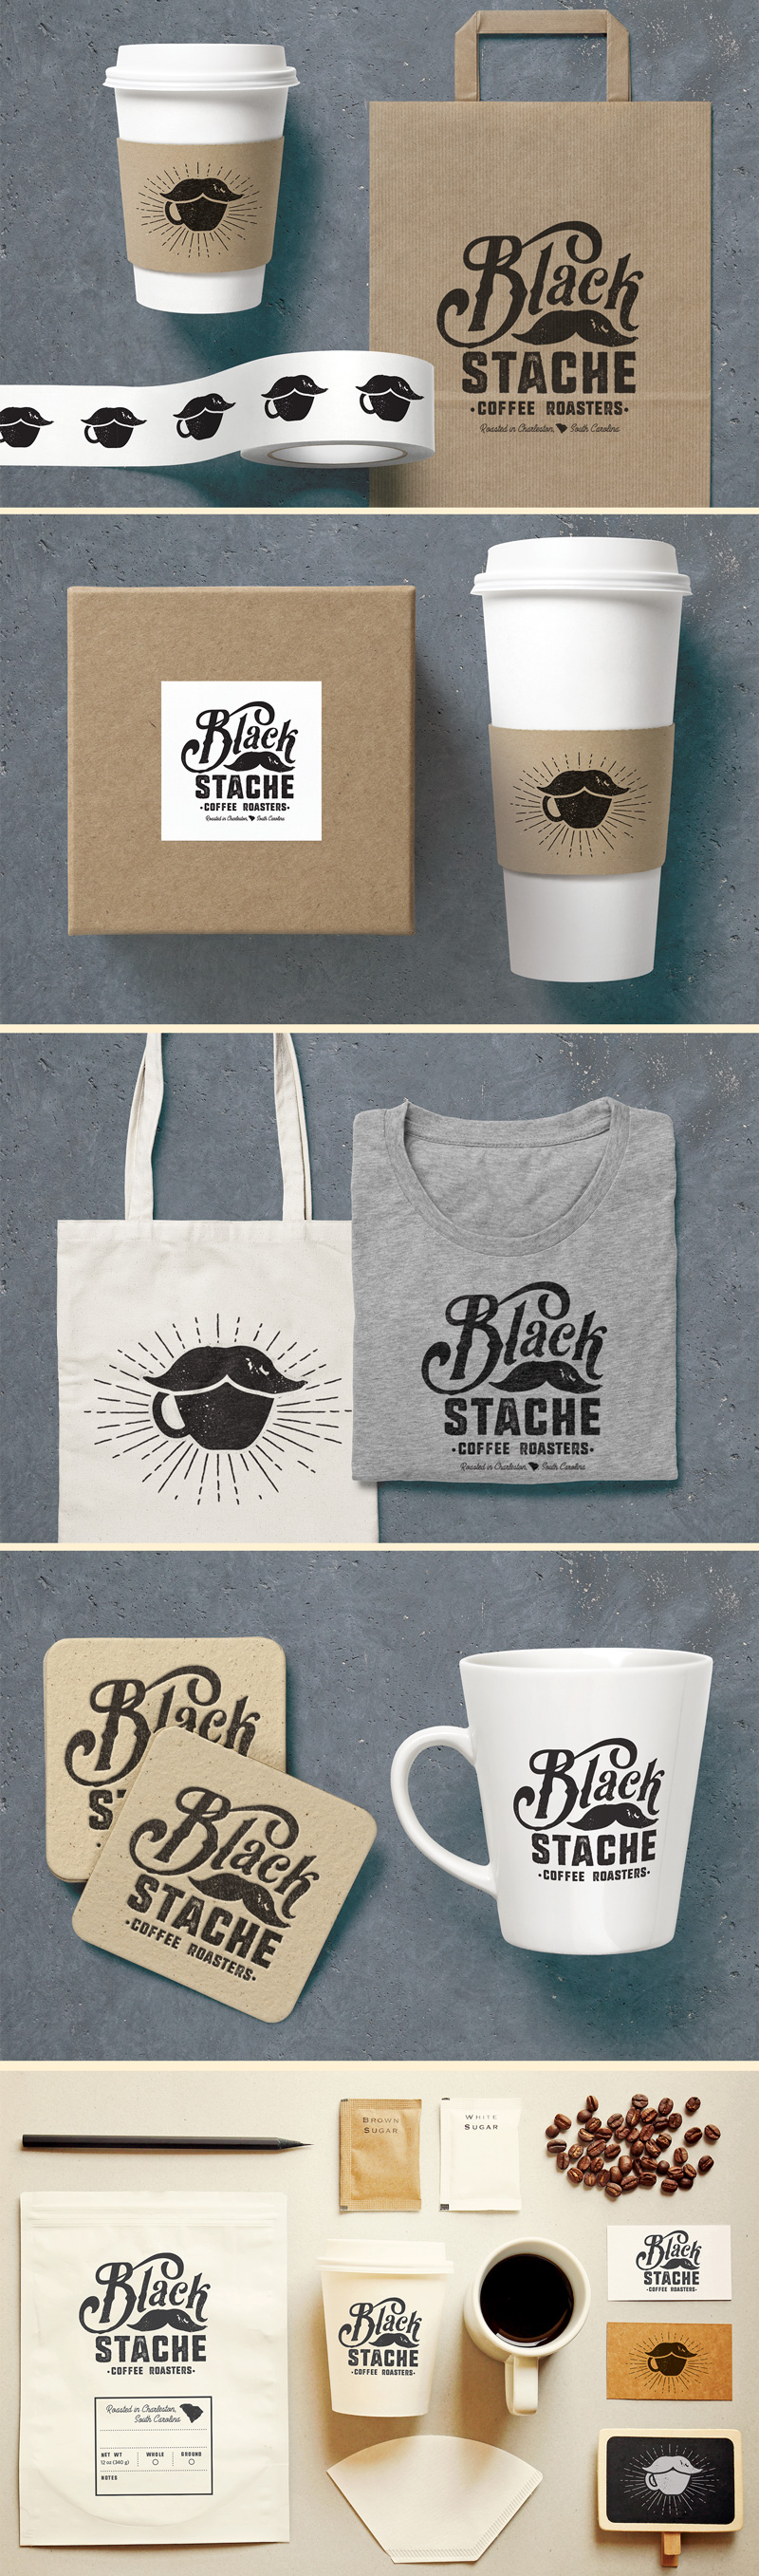 Black Stache branding and packaging design with custom typography and illustration by Riddle Design Co. a graphic design studio in Richmond, Virginia